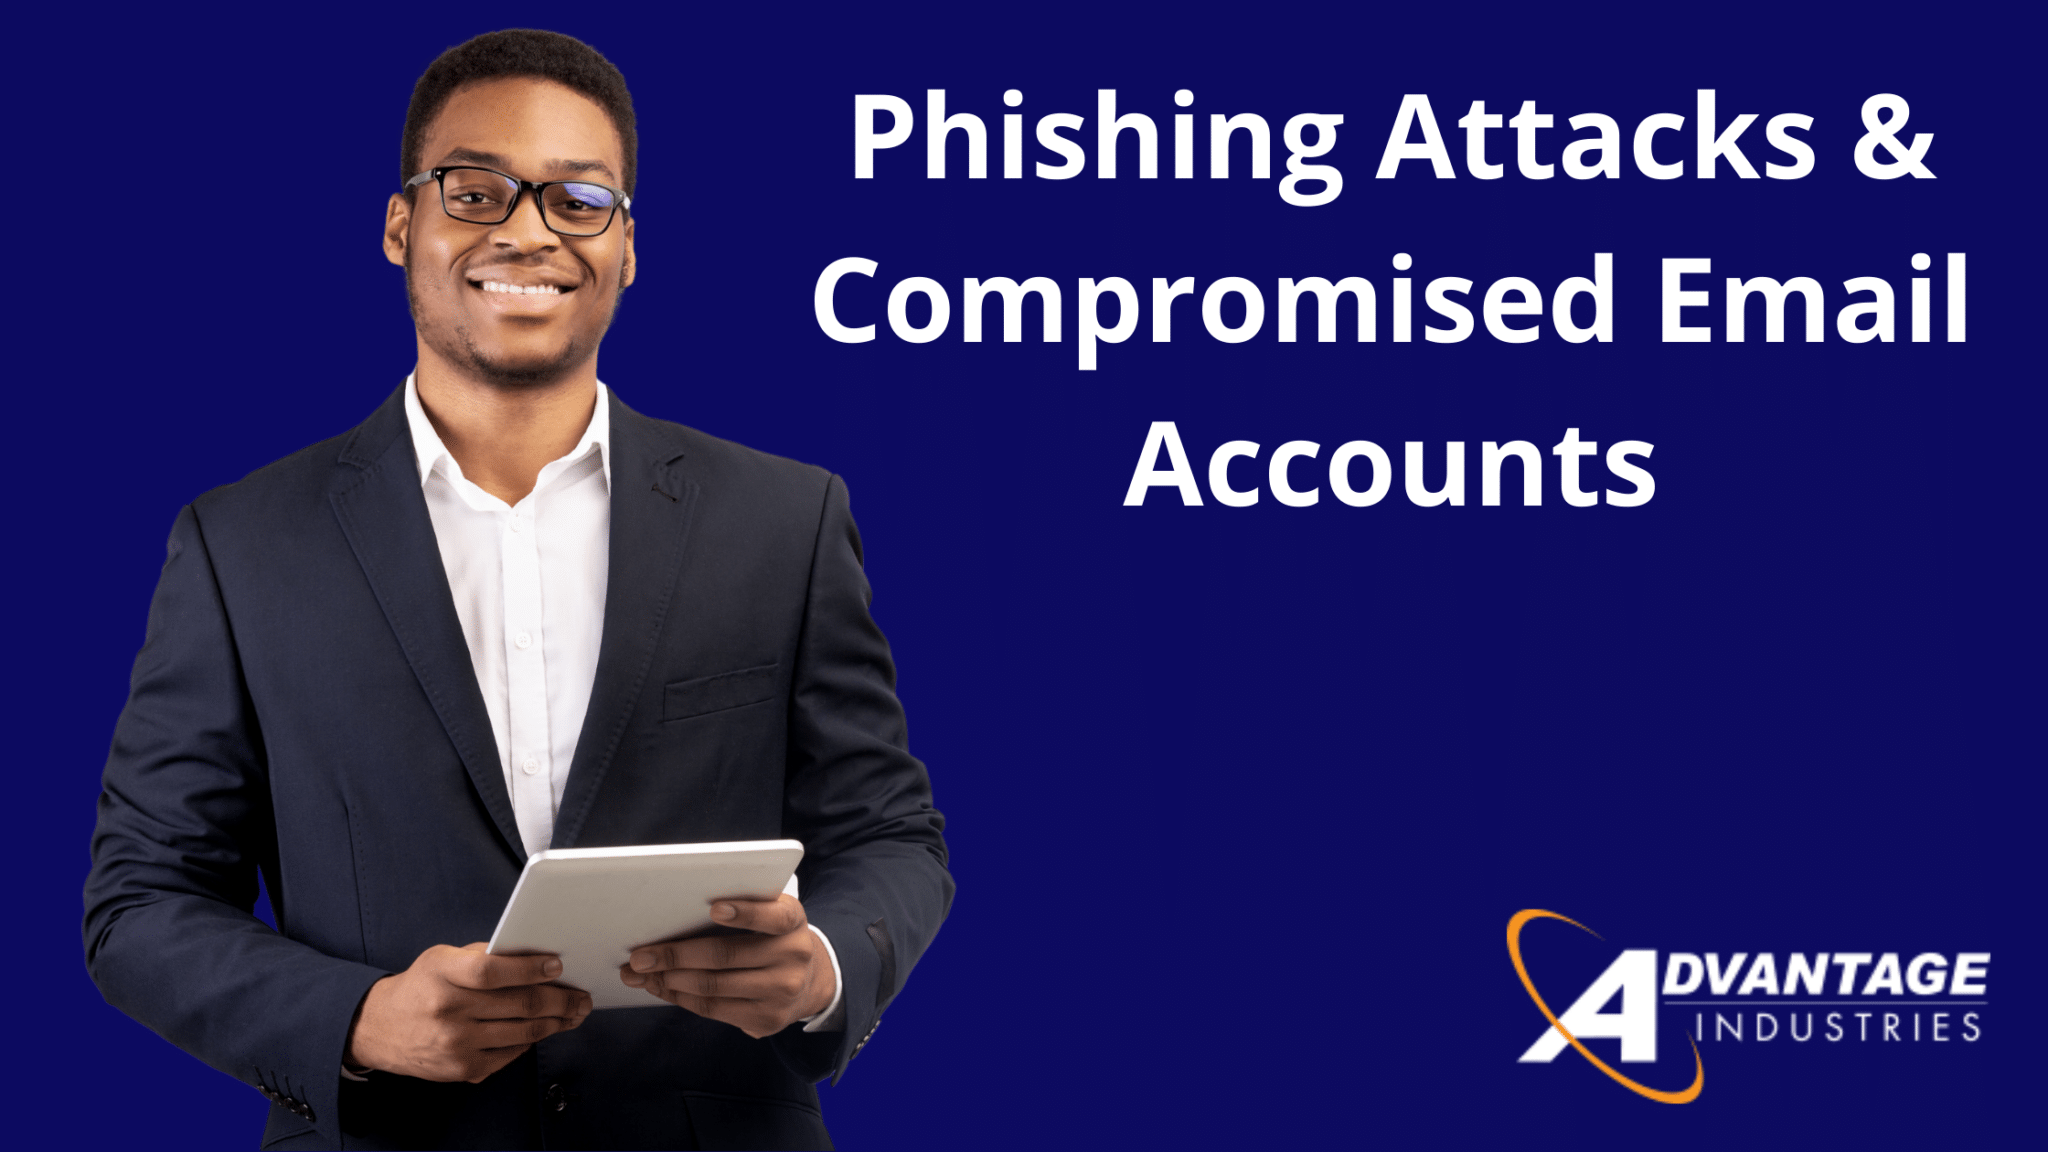 Phishing Attacks & Compromised Email Accounts